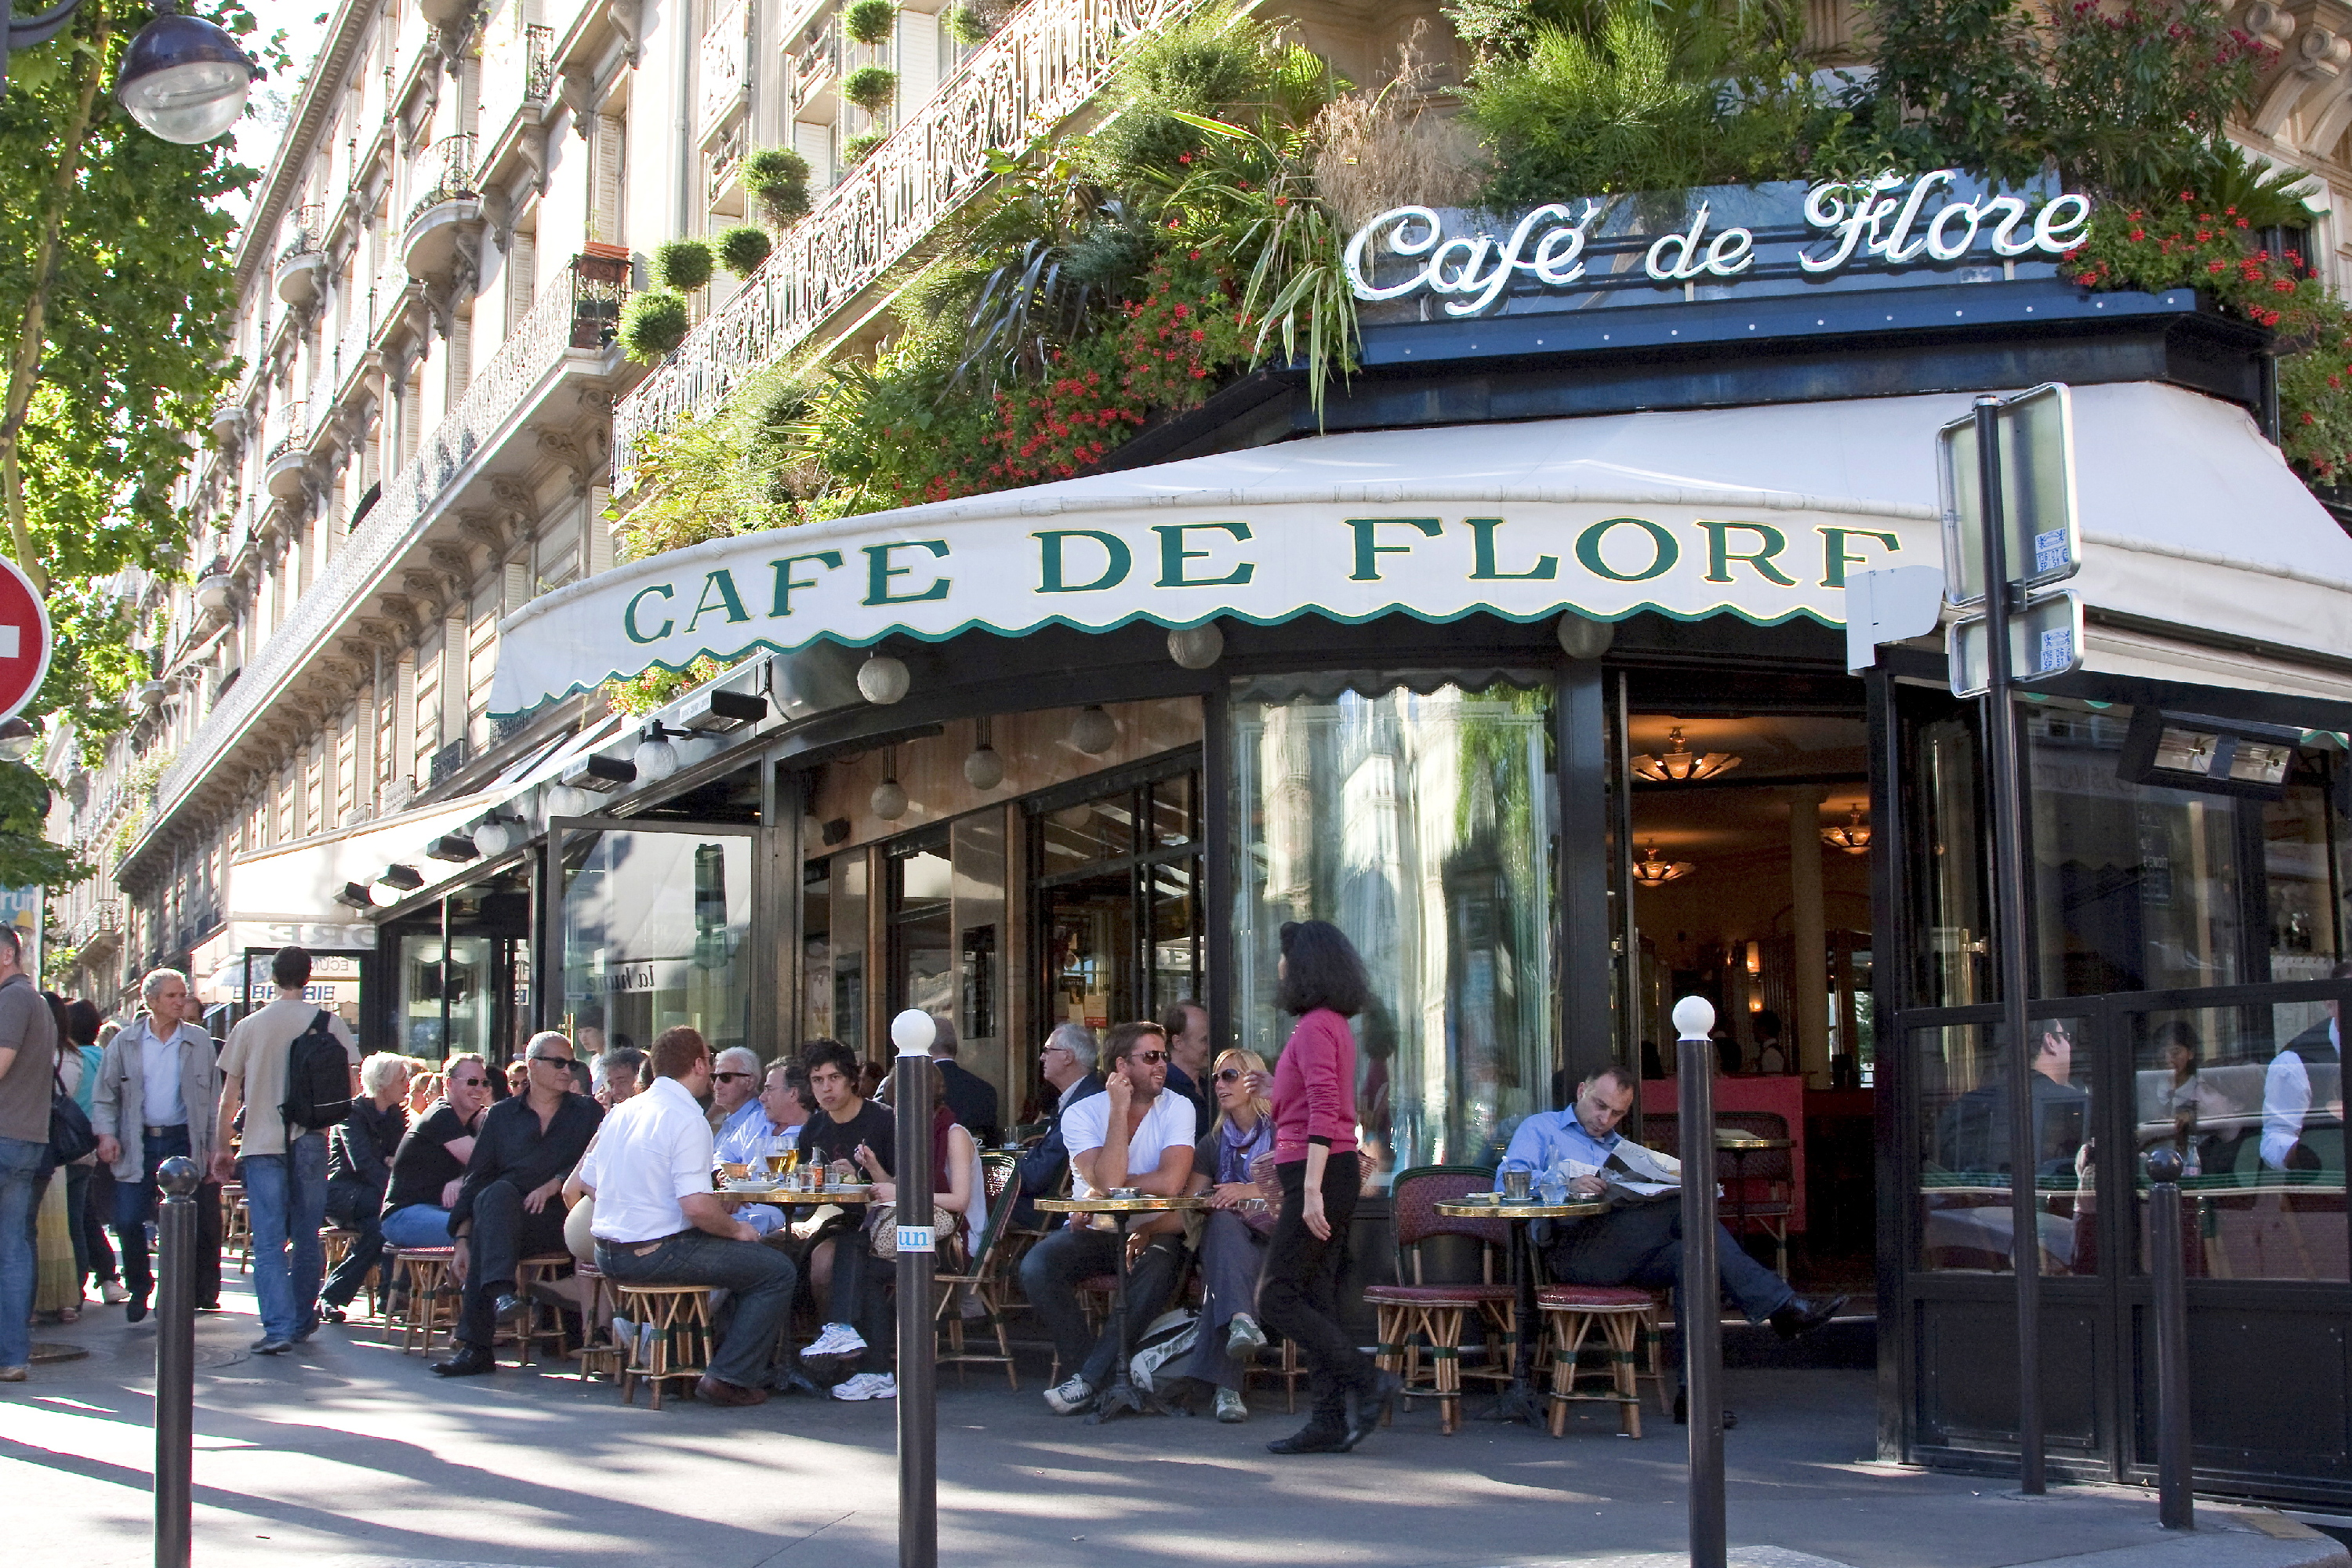 Caf de flore in saint germain des pr s paris for Terrasse english